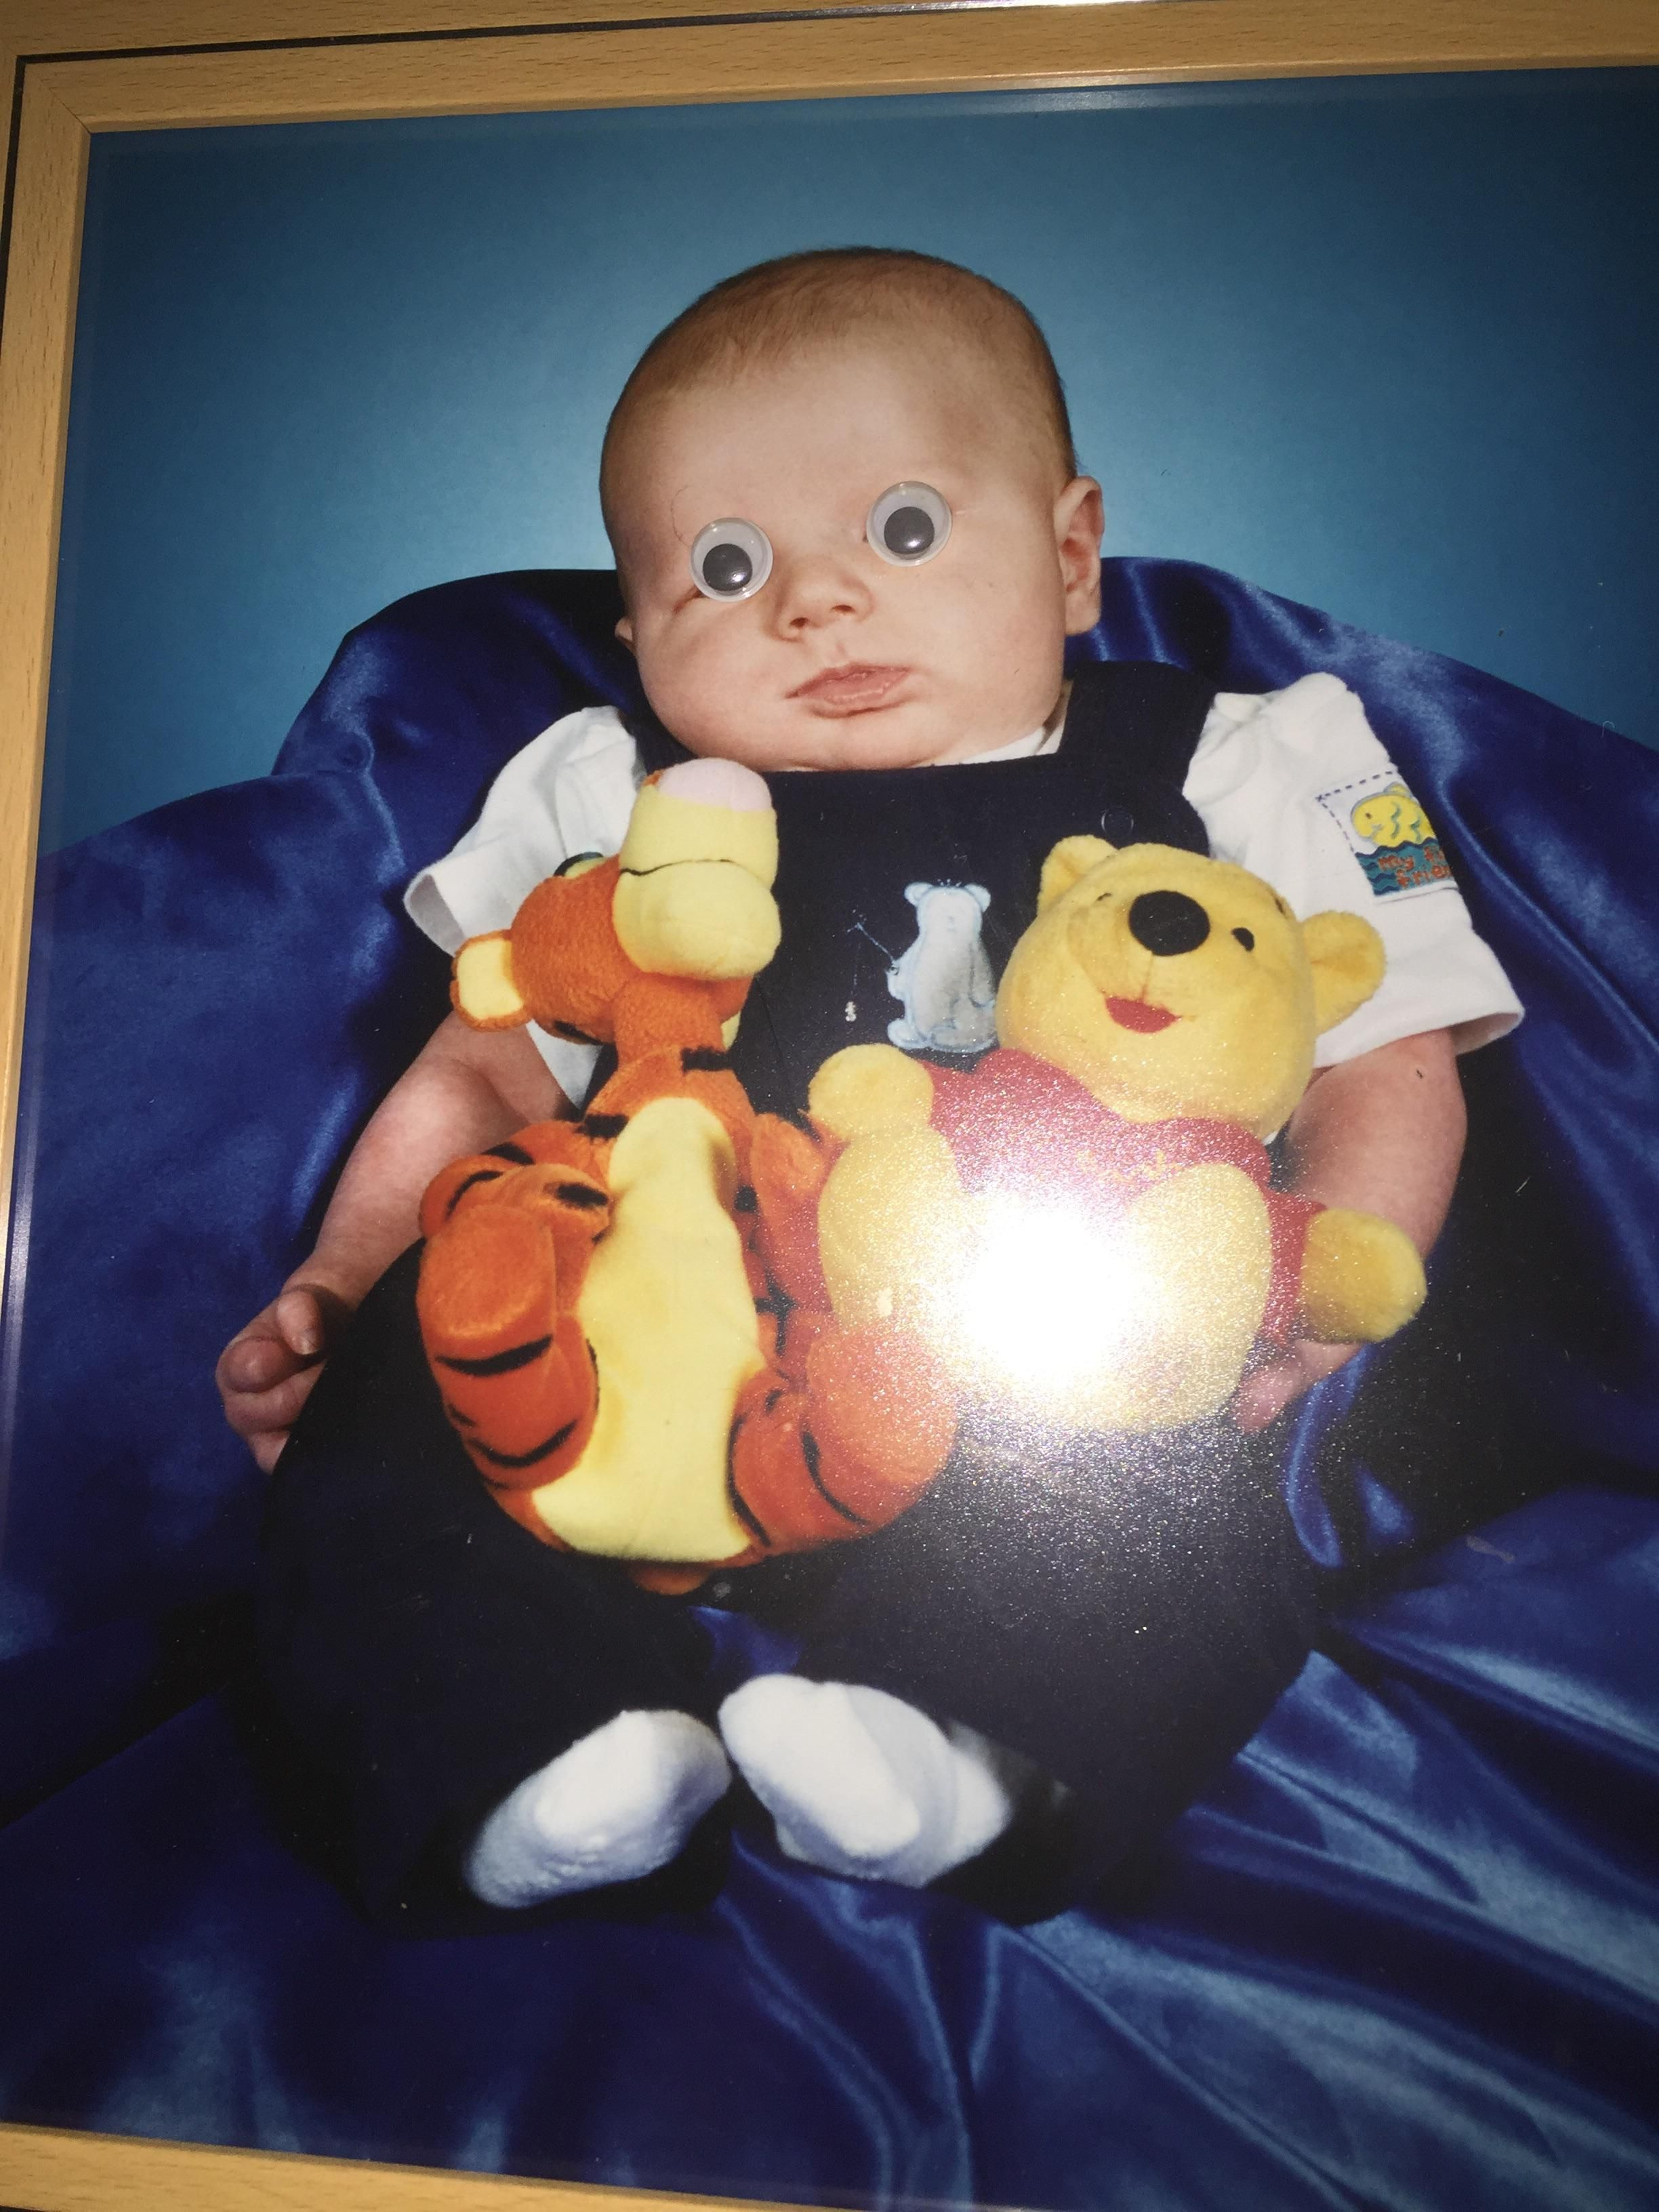 About 5 years ago, I put googly eyes on a picture of my brother as a baby. They're still there to this day.